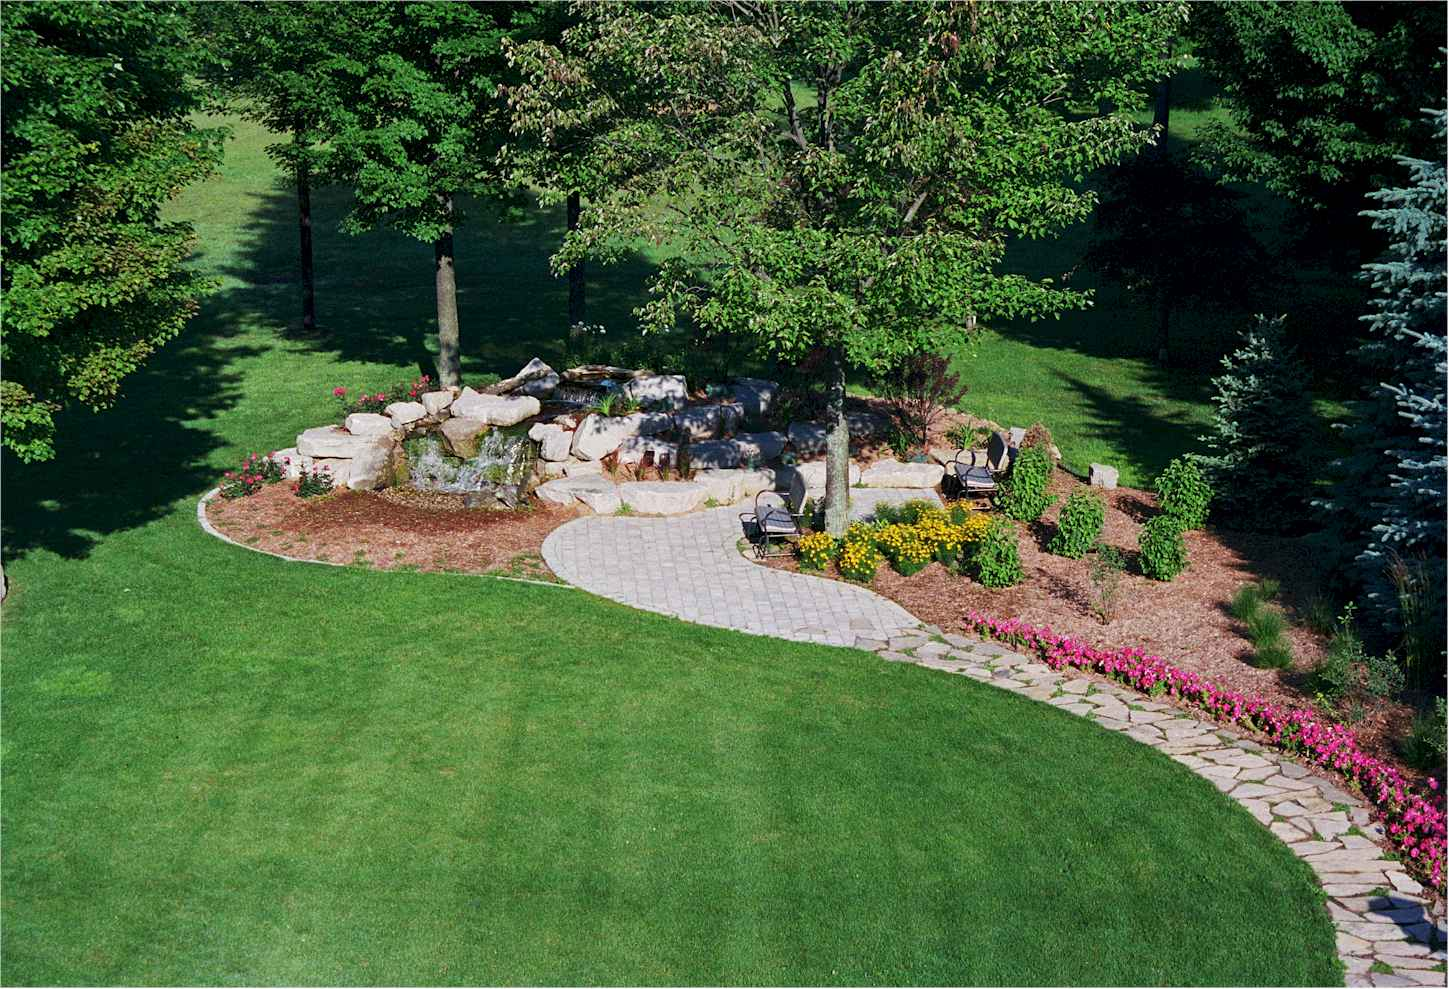 5 landscaping ideas to wow the neighbors Landscape garden design ideas